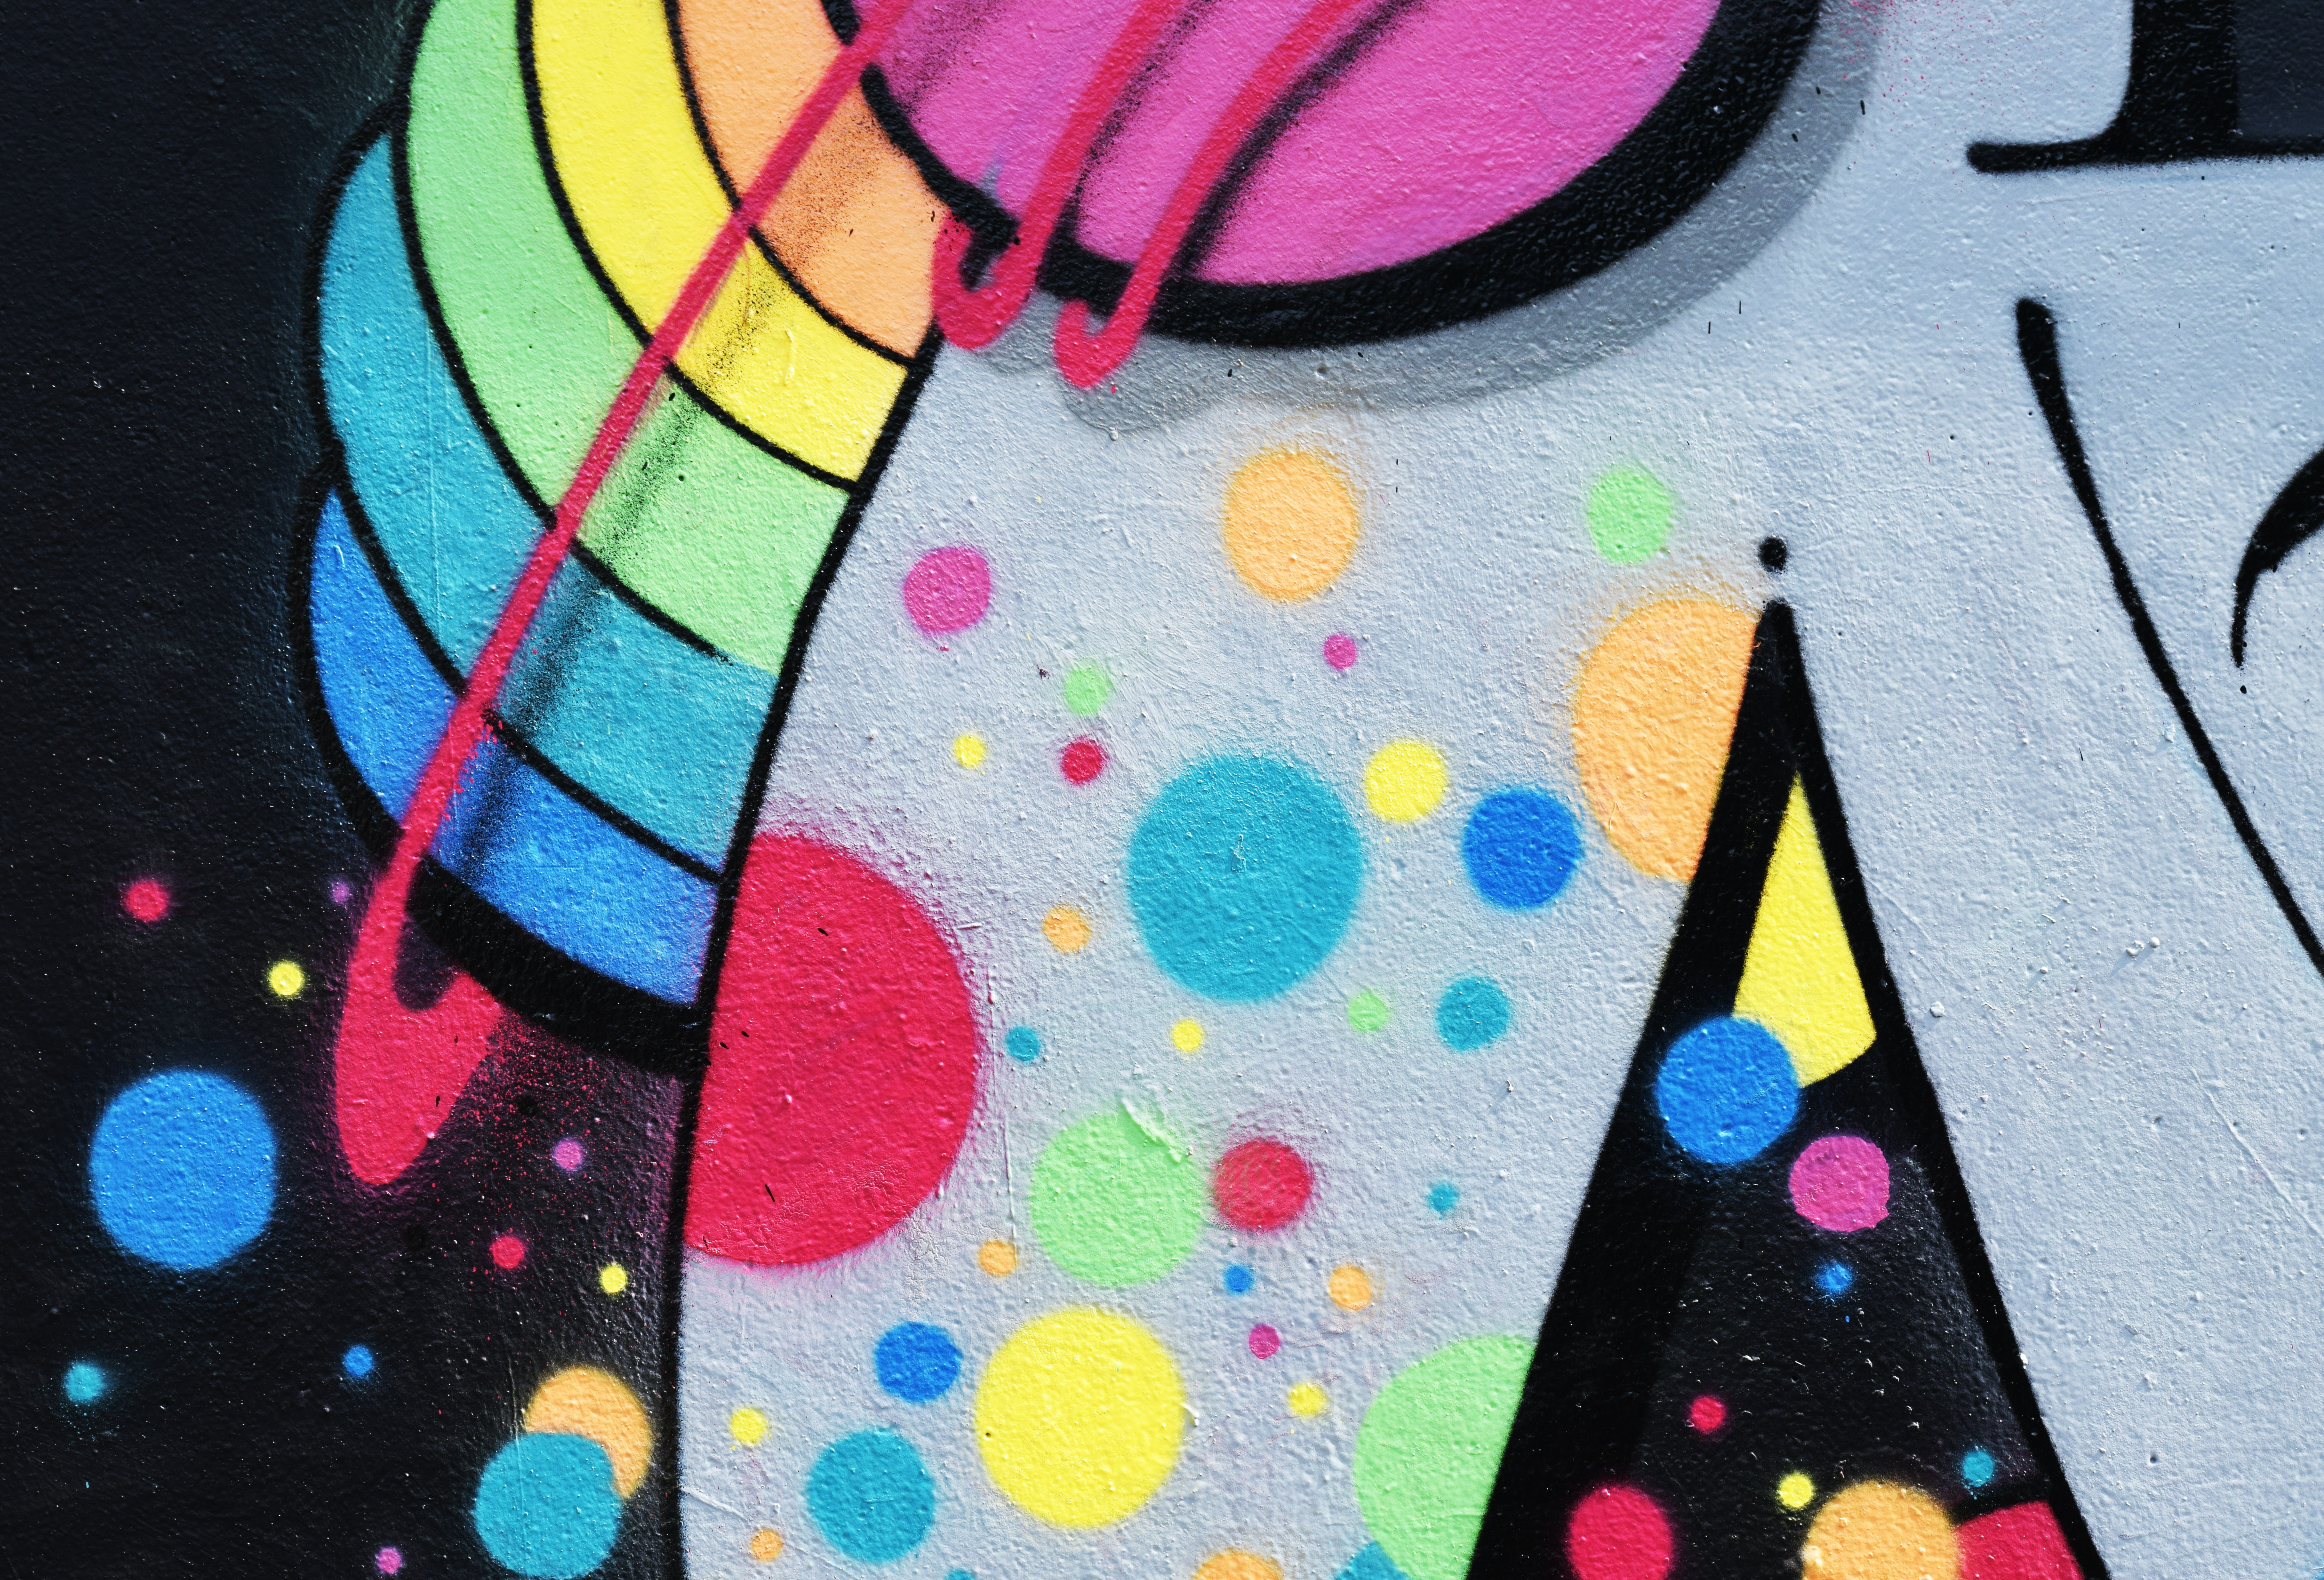 Brightly colored urban street art graffiti mural at Photo Week